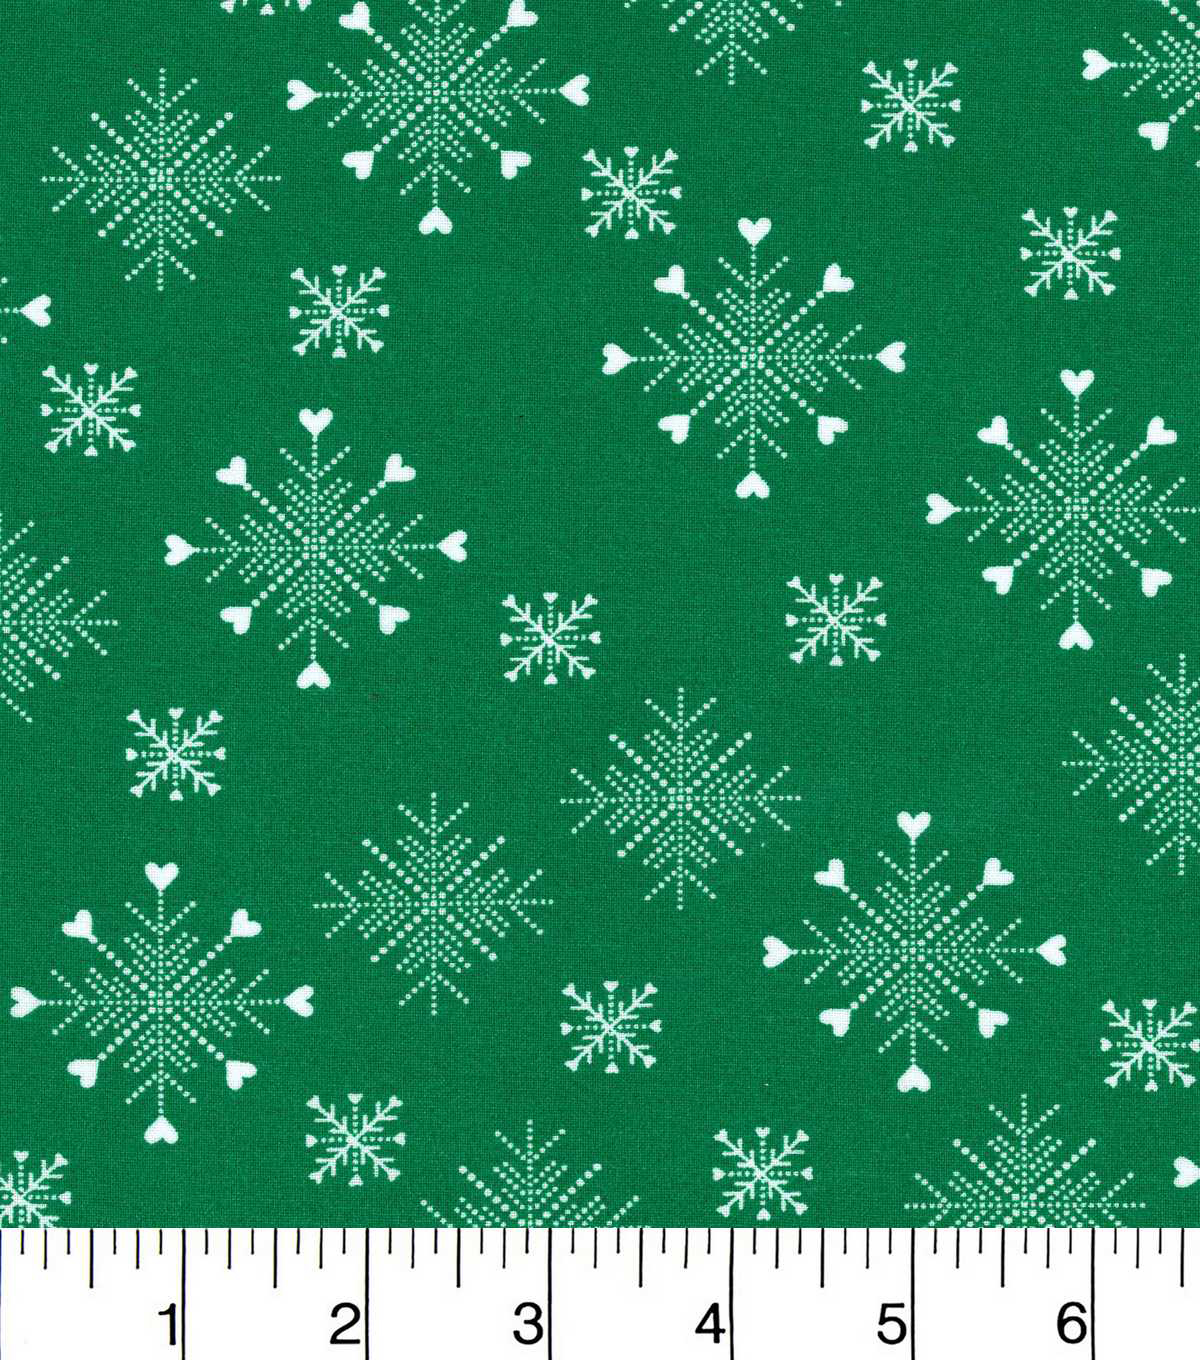 Keepsake Calico Christmas Cotton Fabric-Green Snowflakes With Hearts